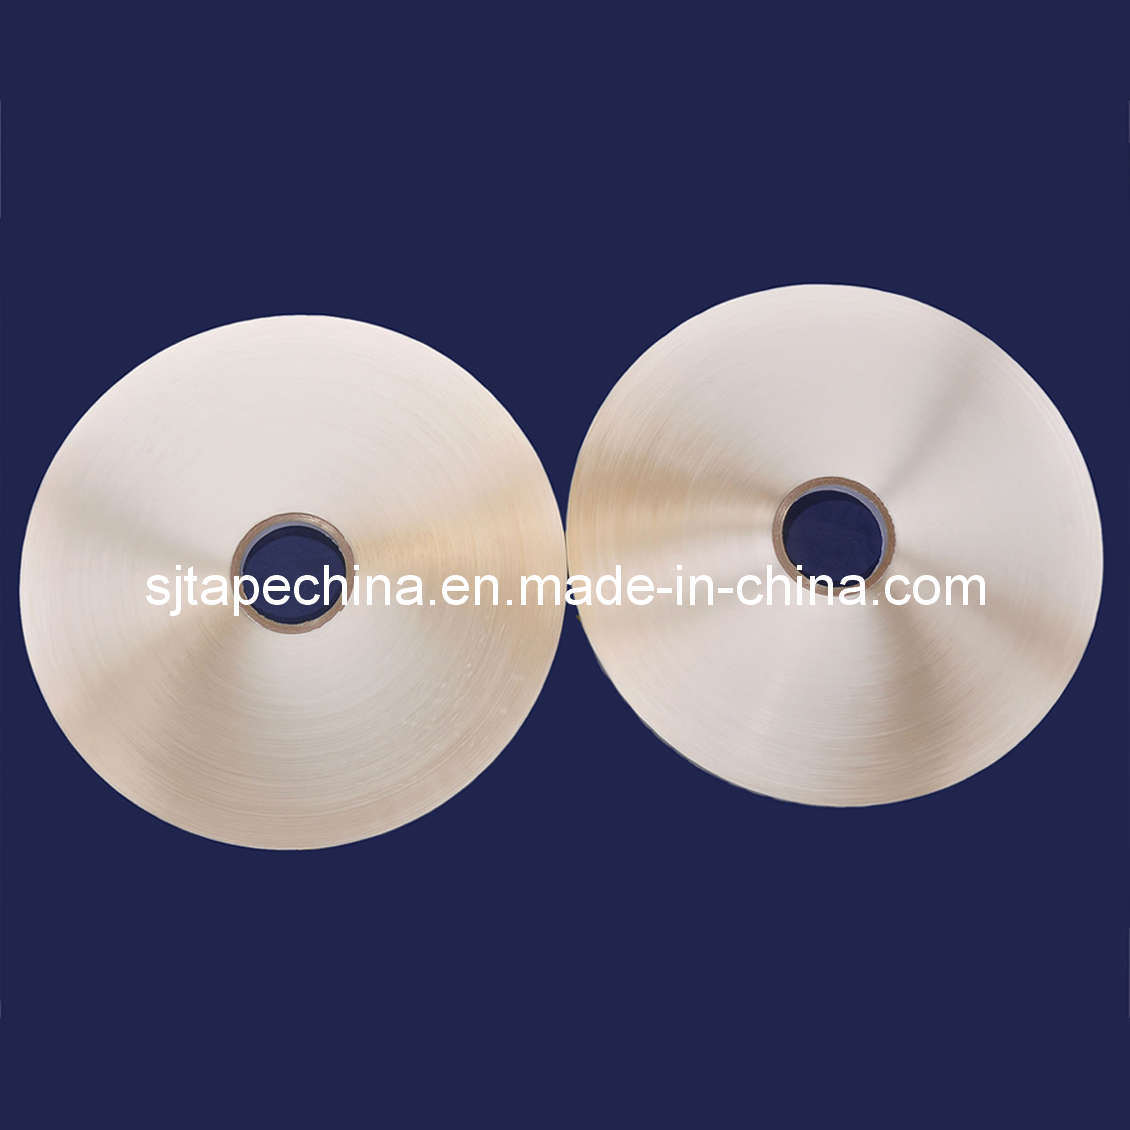 Permanent Sealing Tape, Courier Bag Sealing Tape